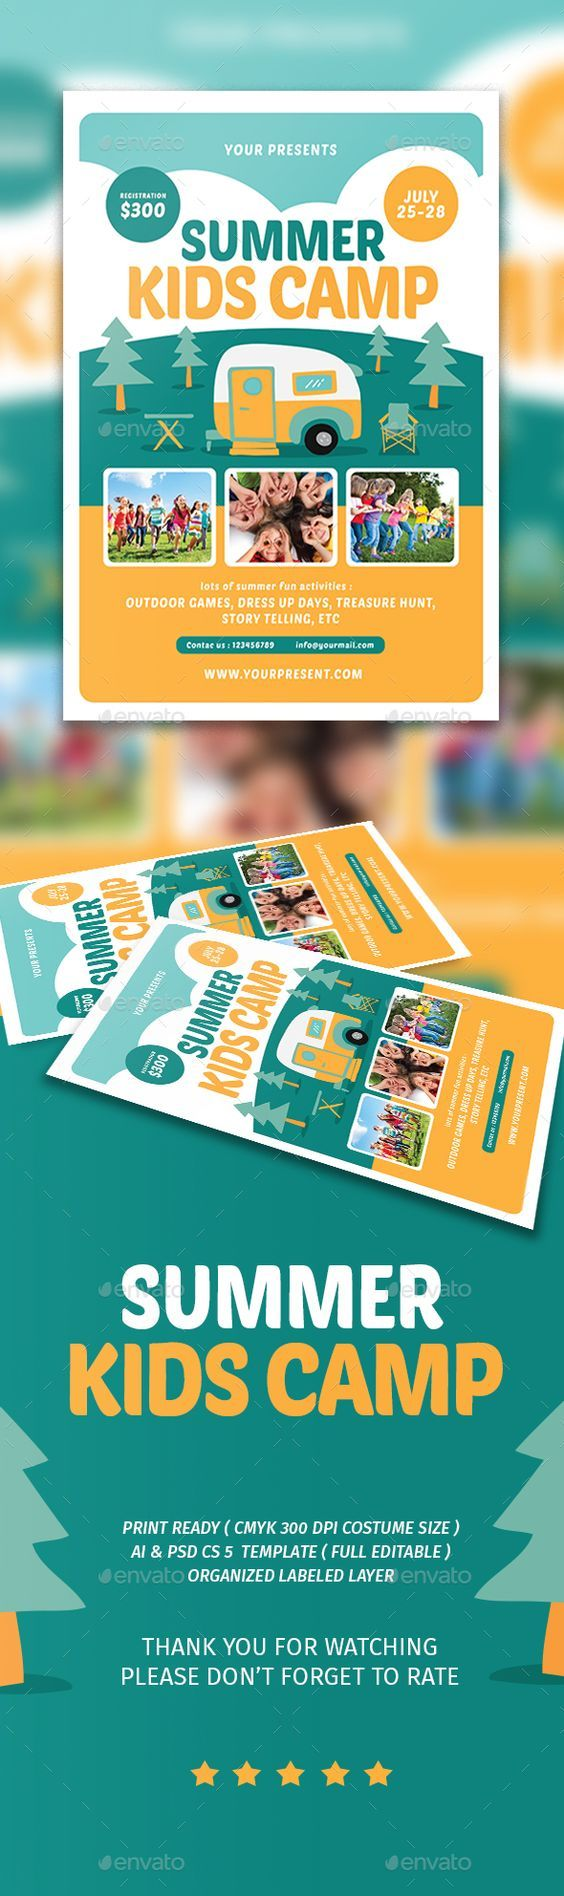 Best Flyers Images On   Editorial Design Planks And